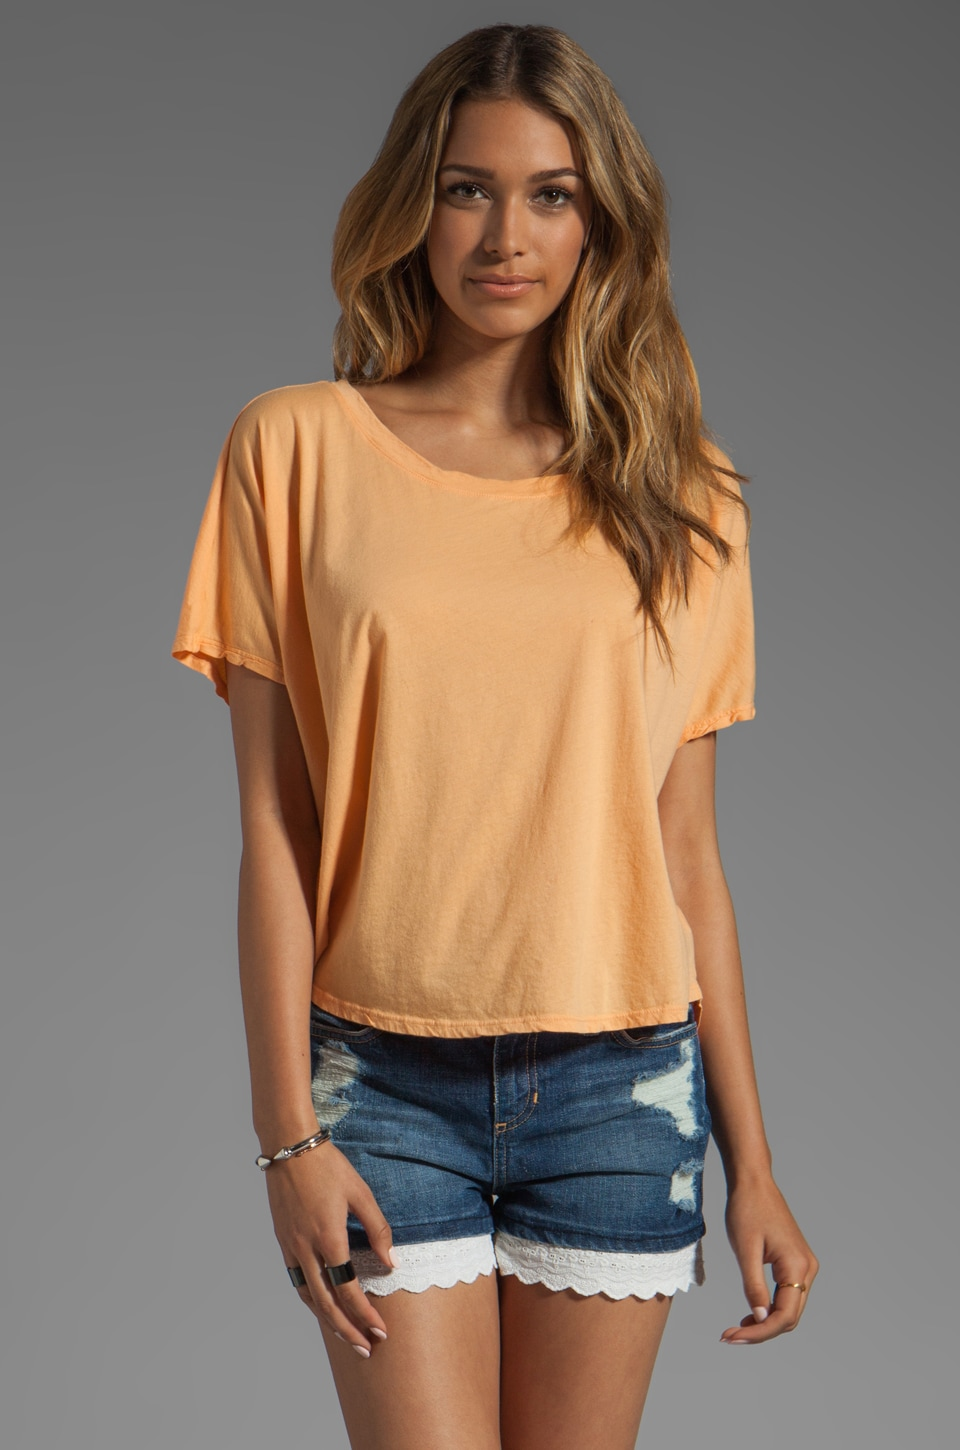 Michael Stars Short Sleeve Wide Neck Hi-Low Crop Top in Creamsicle